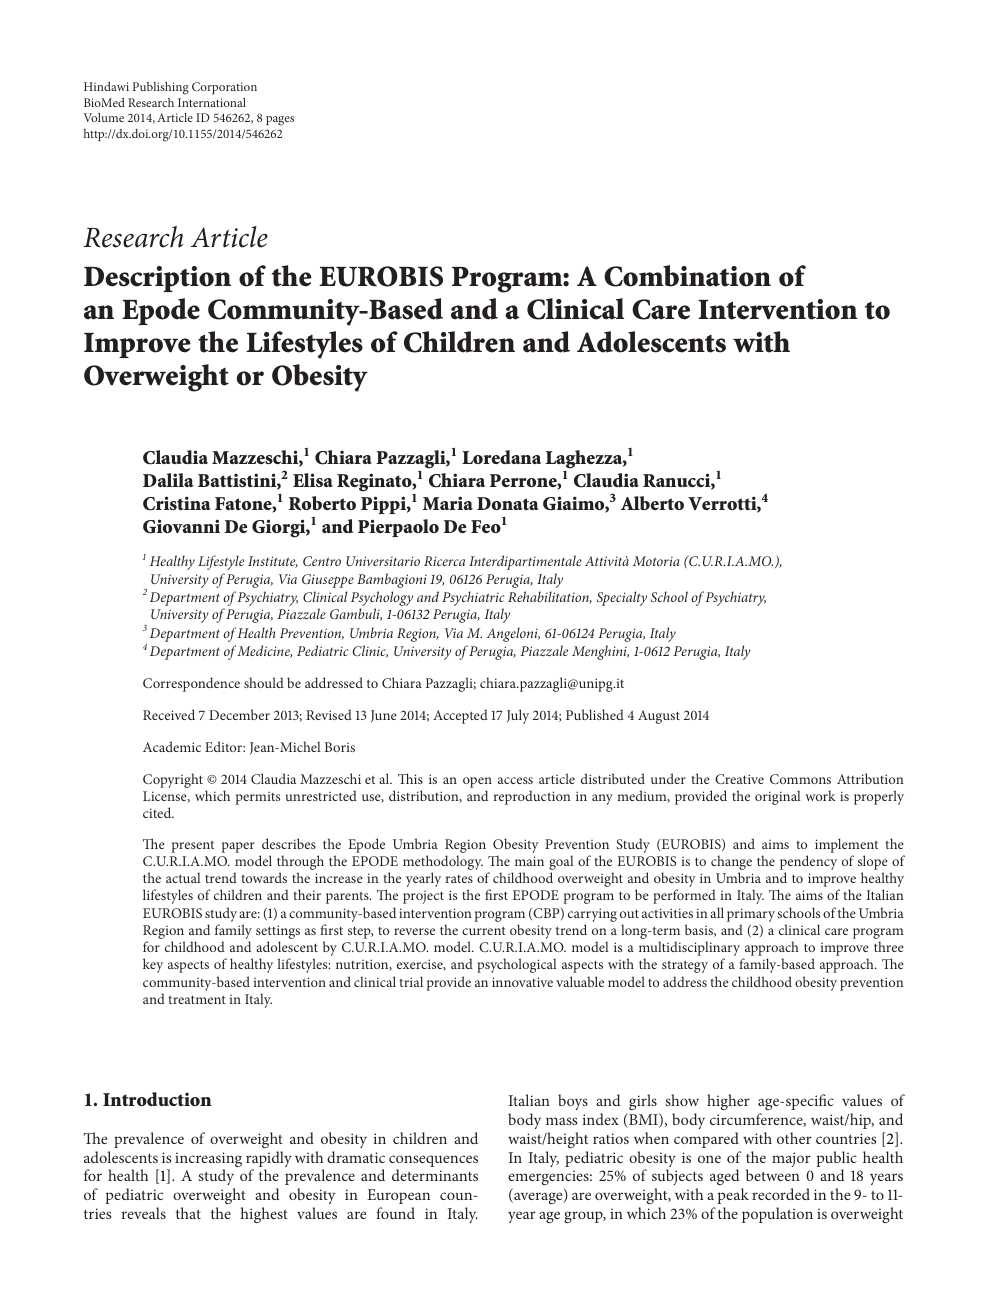 Description Of The Eurobis Program A Combination Of An Epode Community Based And A Clinical Care Intervention To Improve The Lifestyles Of Children And Adolescents With Overweight Or Obesity Topic Of Research